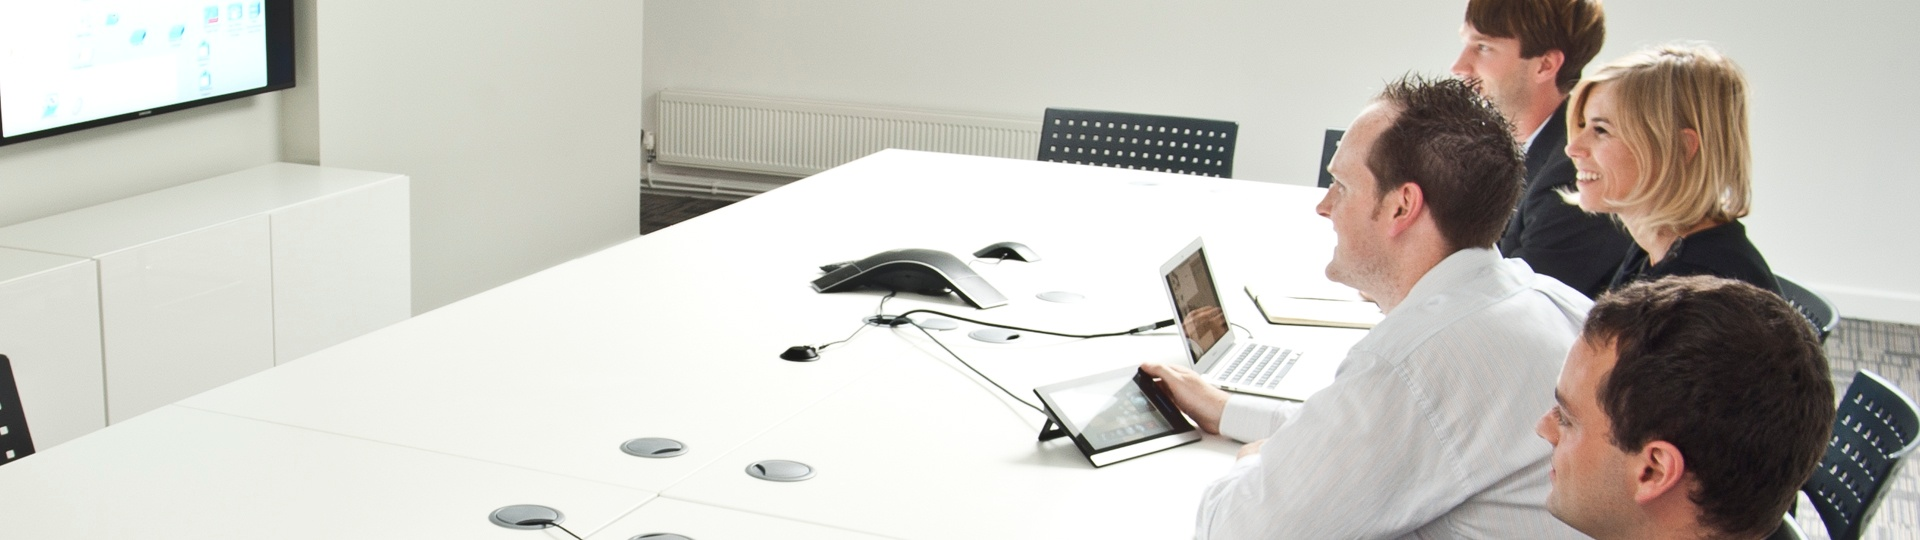 Video conferencing at Ideal